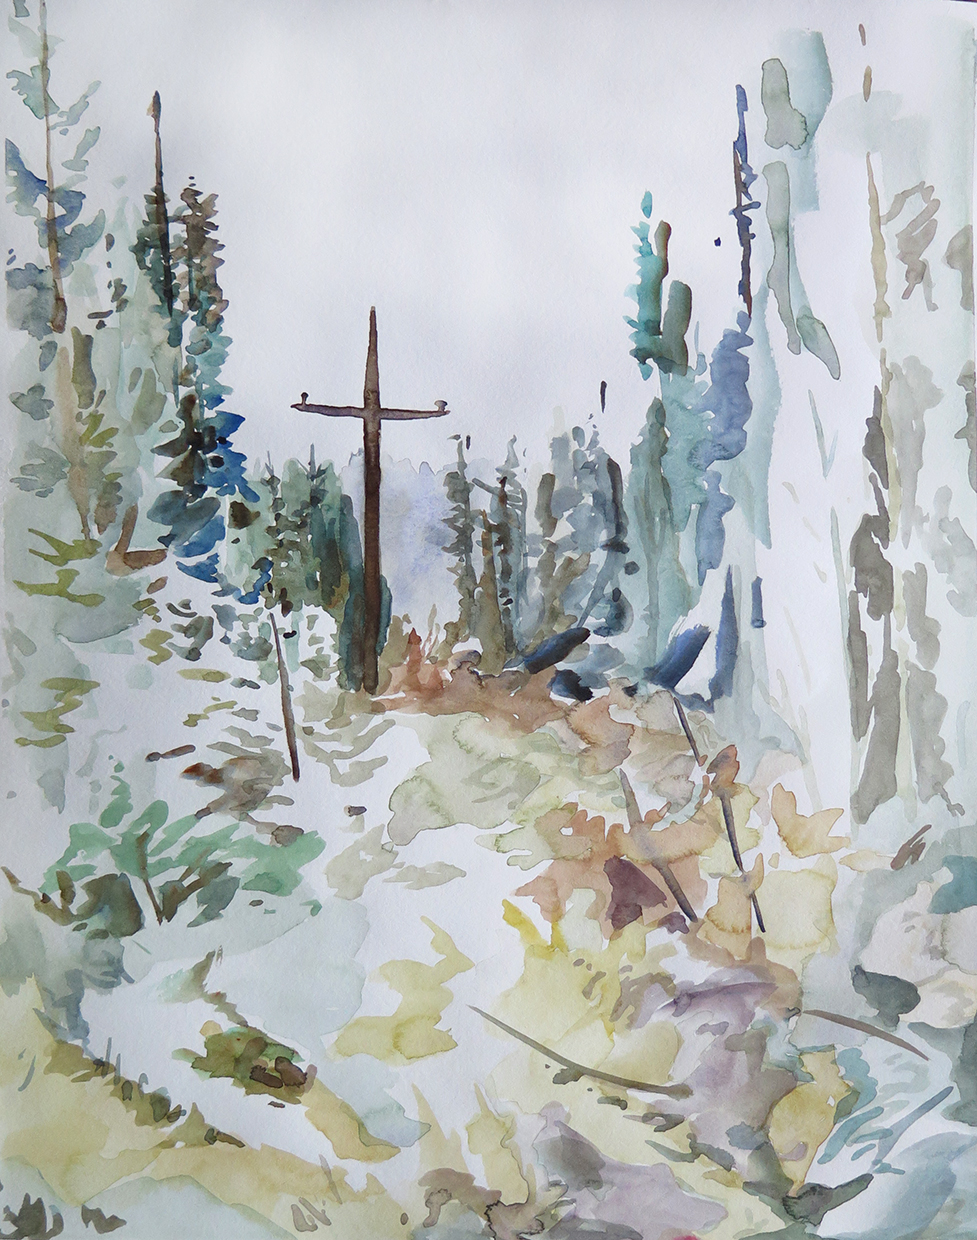 Trail Line, Dale   Watercolour on paper, 10.6 in. x 13.8 in. 2013